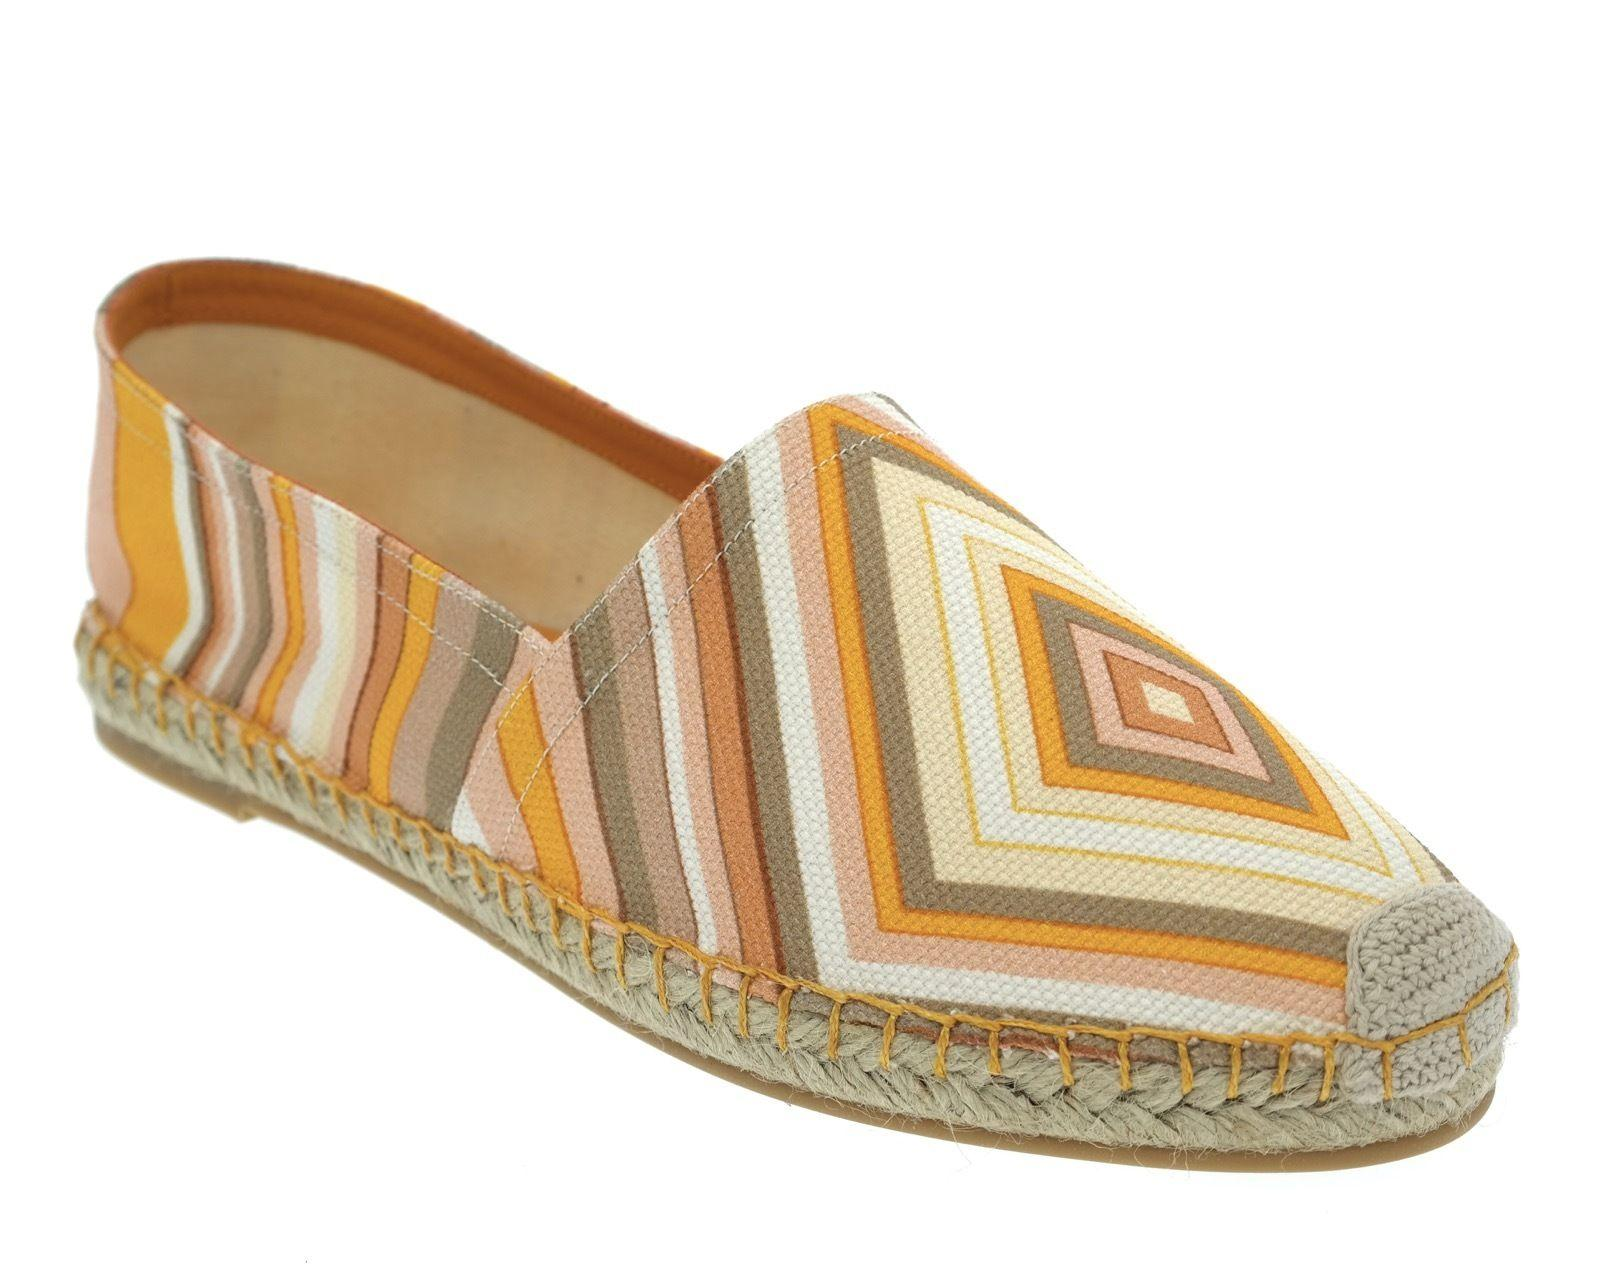 Valentino Mandarin Native Couture Espadrille Flats Size US 9 Regular (M, B)